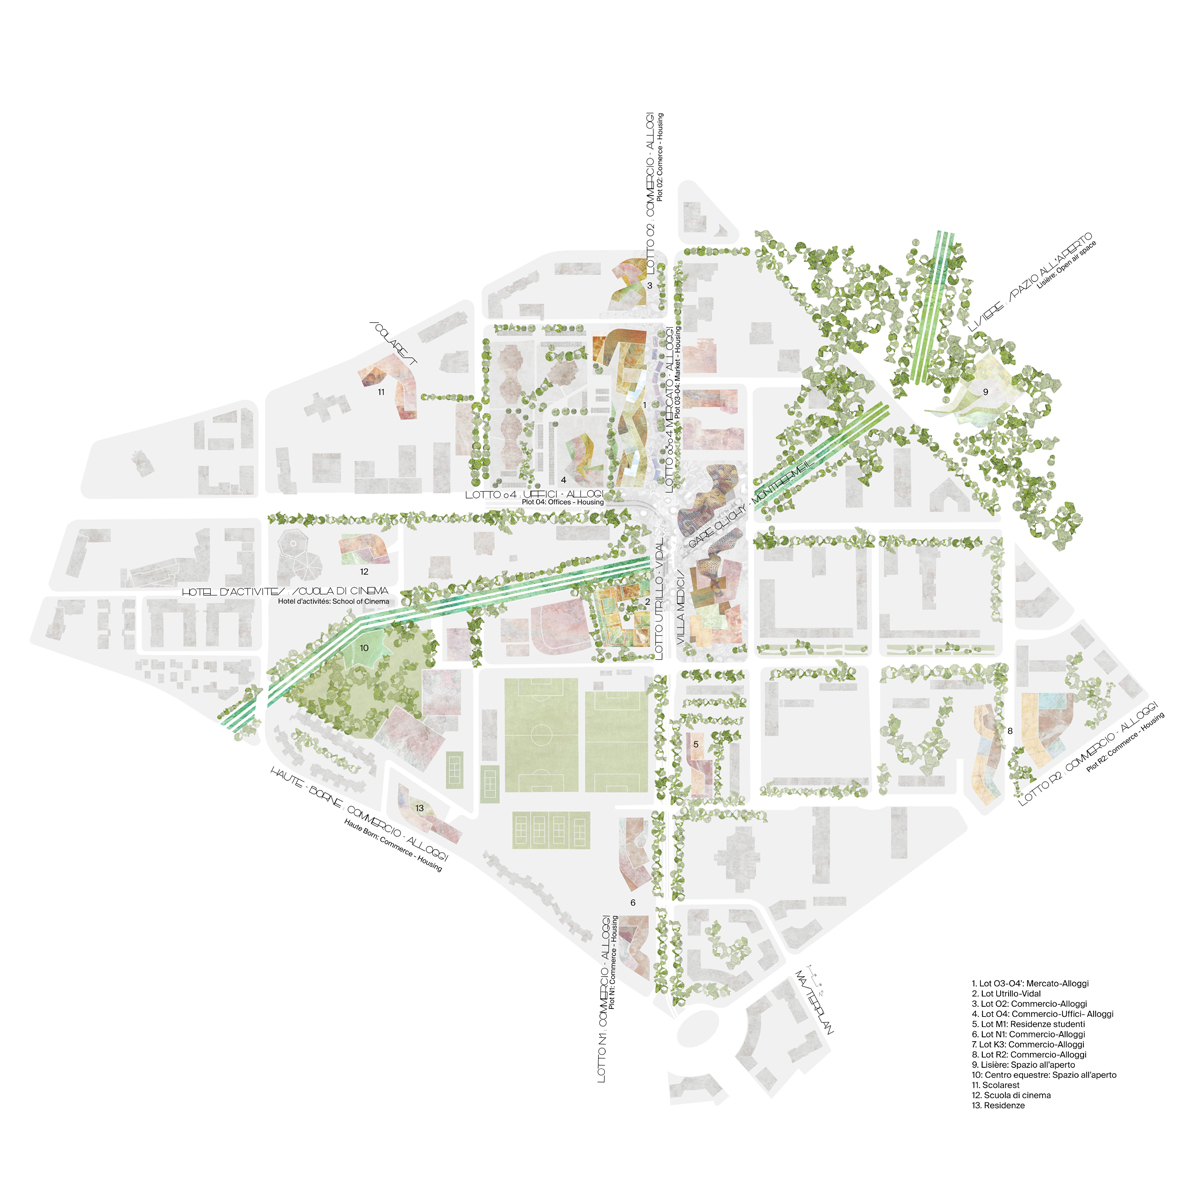 Plateau Central Masterplan and Housing, 2017.  Benedetta Tagliabue - Miralles Tagliabue EMBT  (Masterplan drawing)